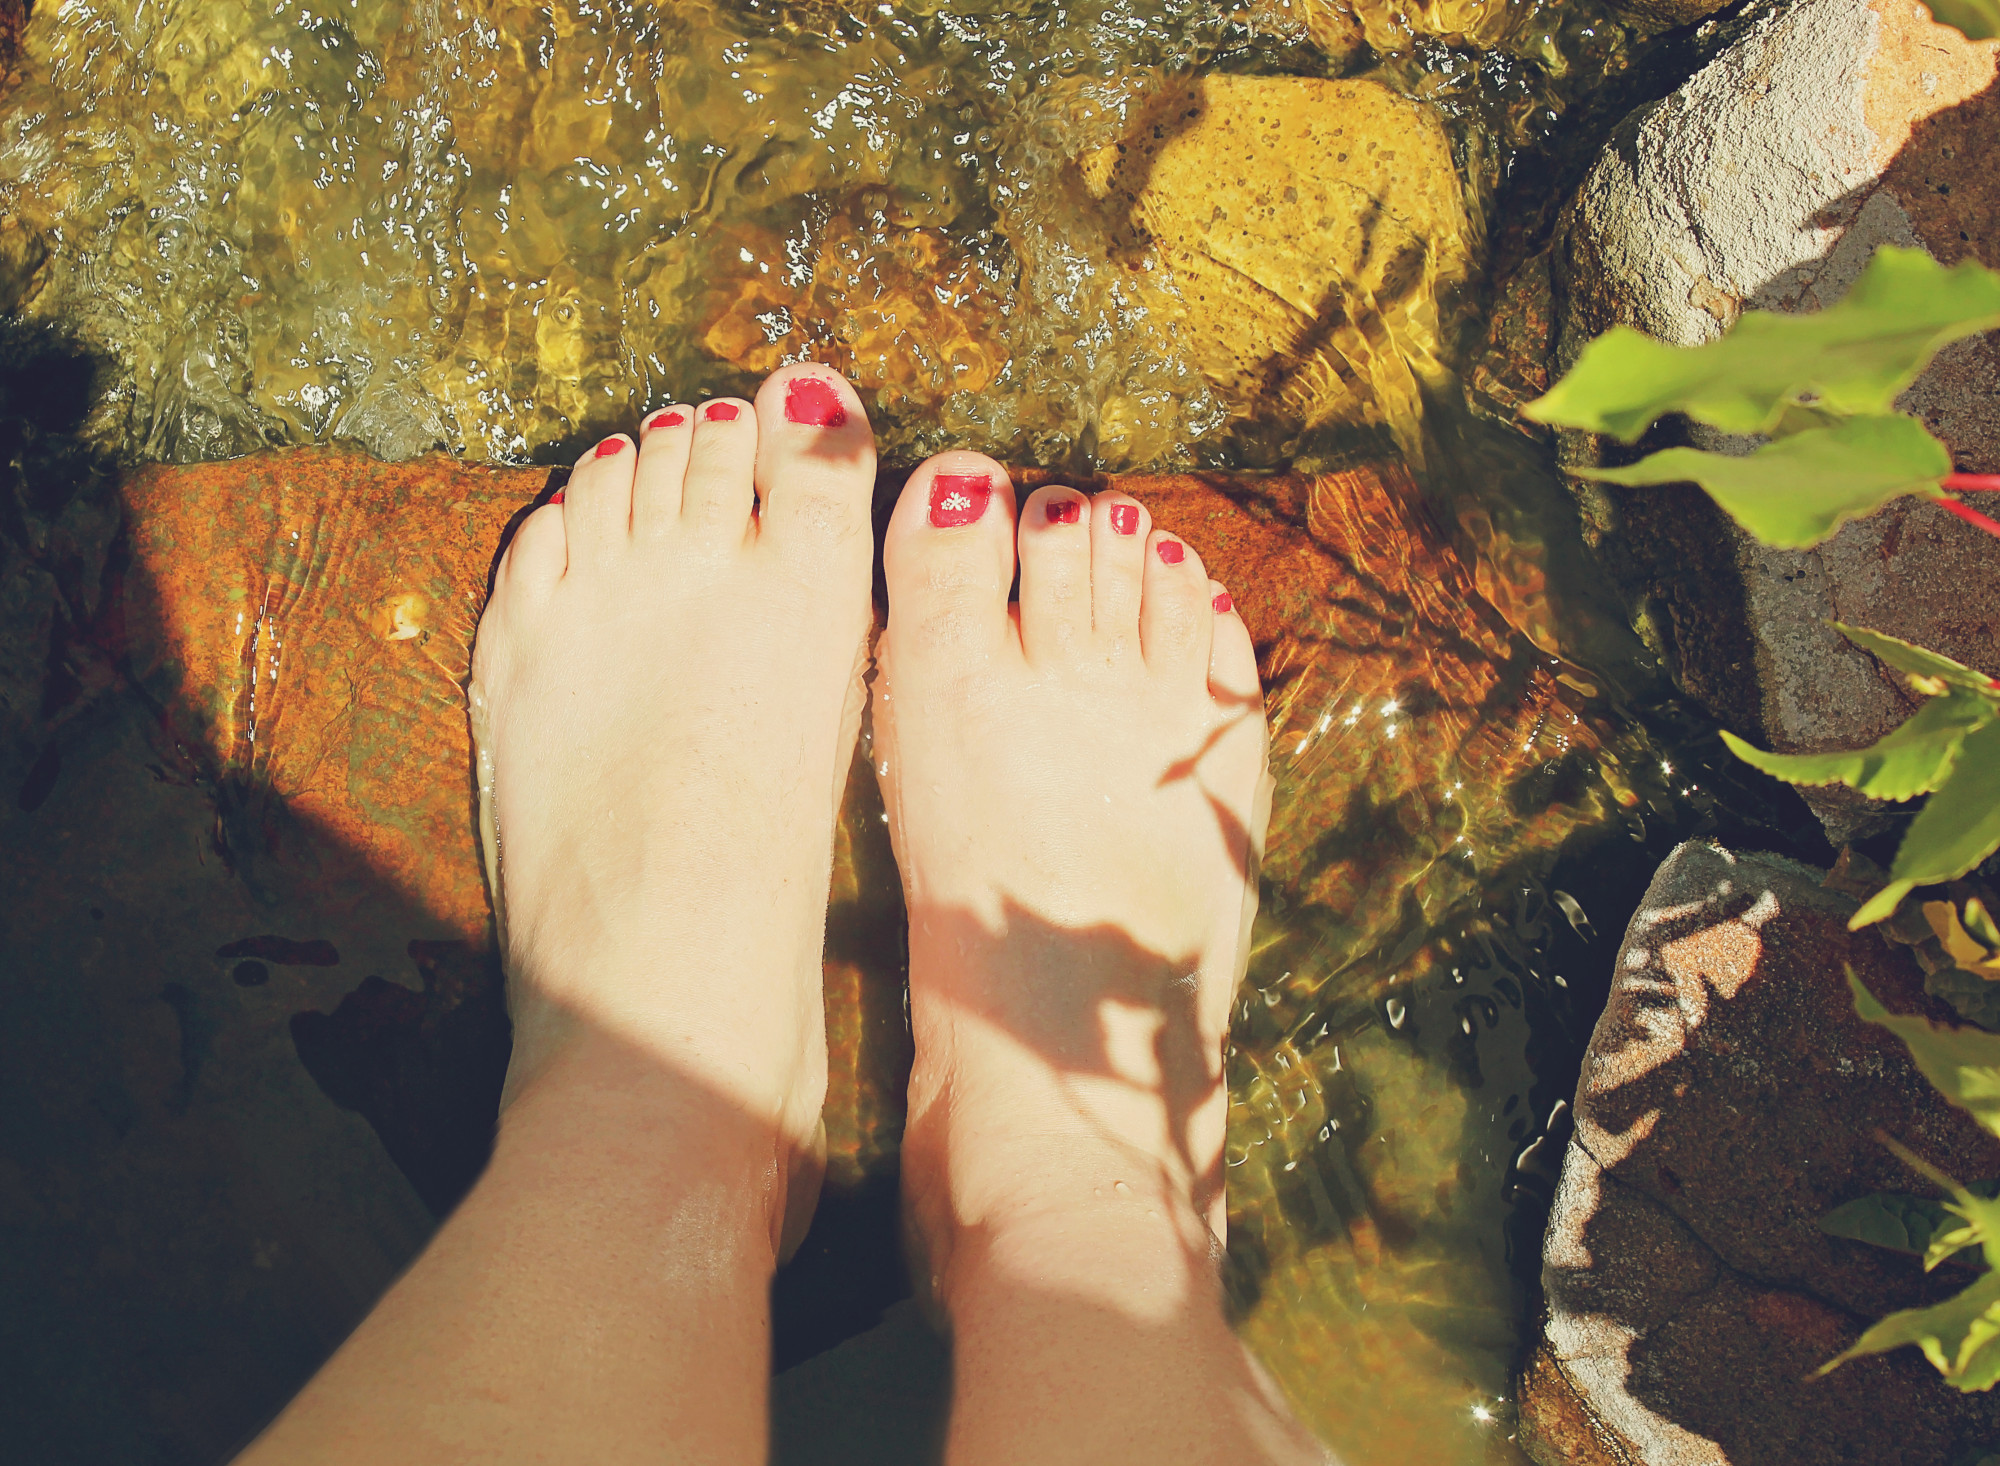 Earthing: The Healing Power of Nature?